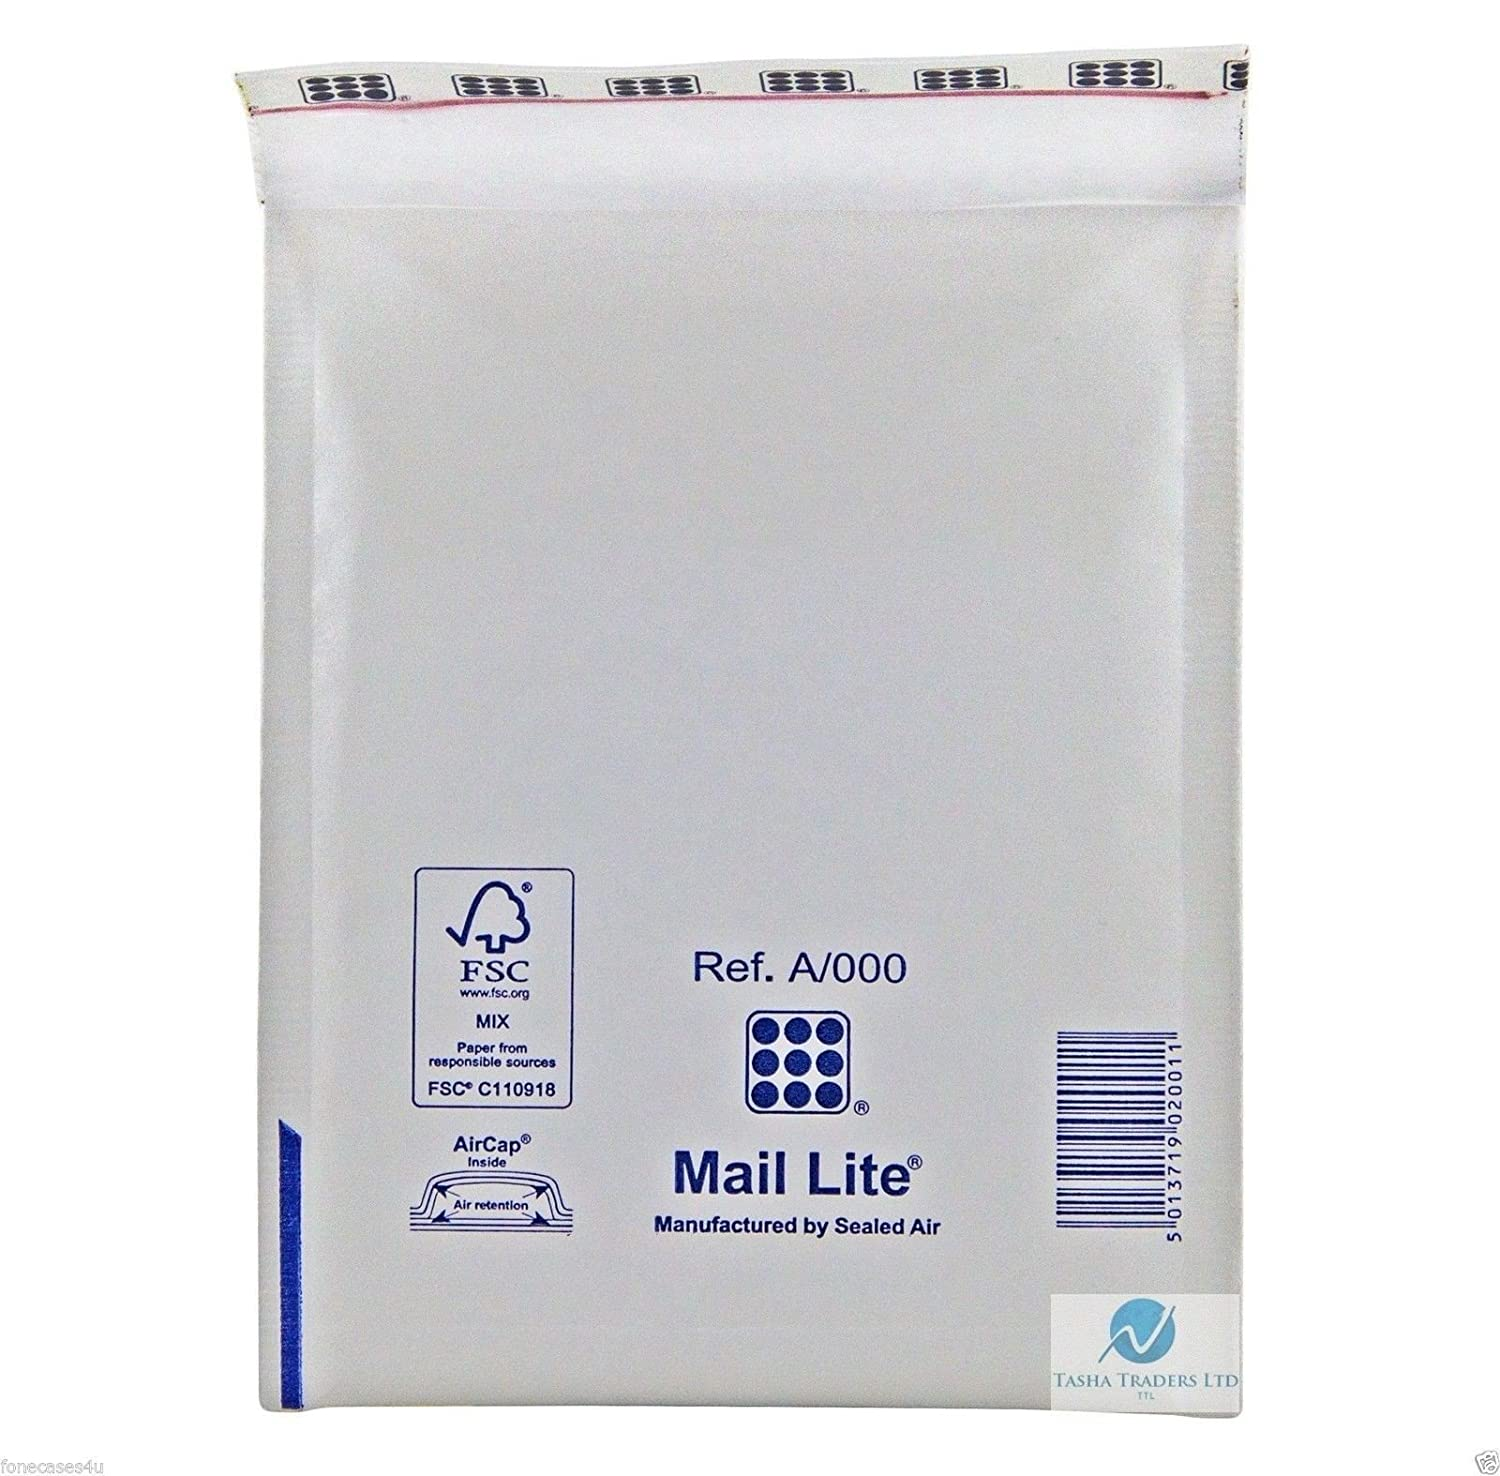 Mail Lite Size A/000 110 x 160 mm Padded Envelope - White (Pack of 100) Sealed Air